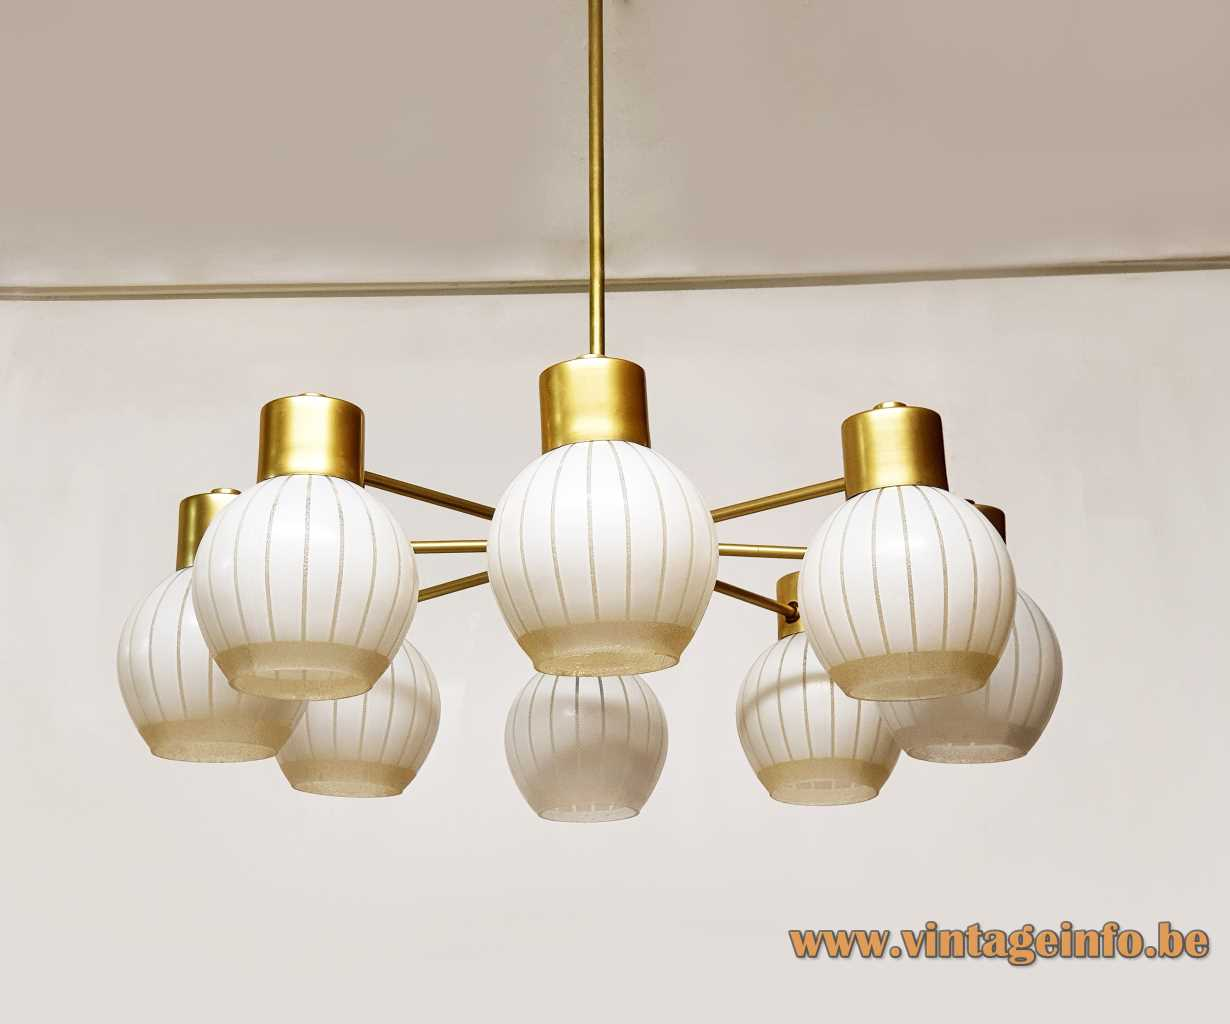 VEB Wohnraumleuchten striped globes chandelier 8 glass lampshades brass rods 1960s East Germany GDR Elektro-Medizingeräte